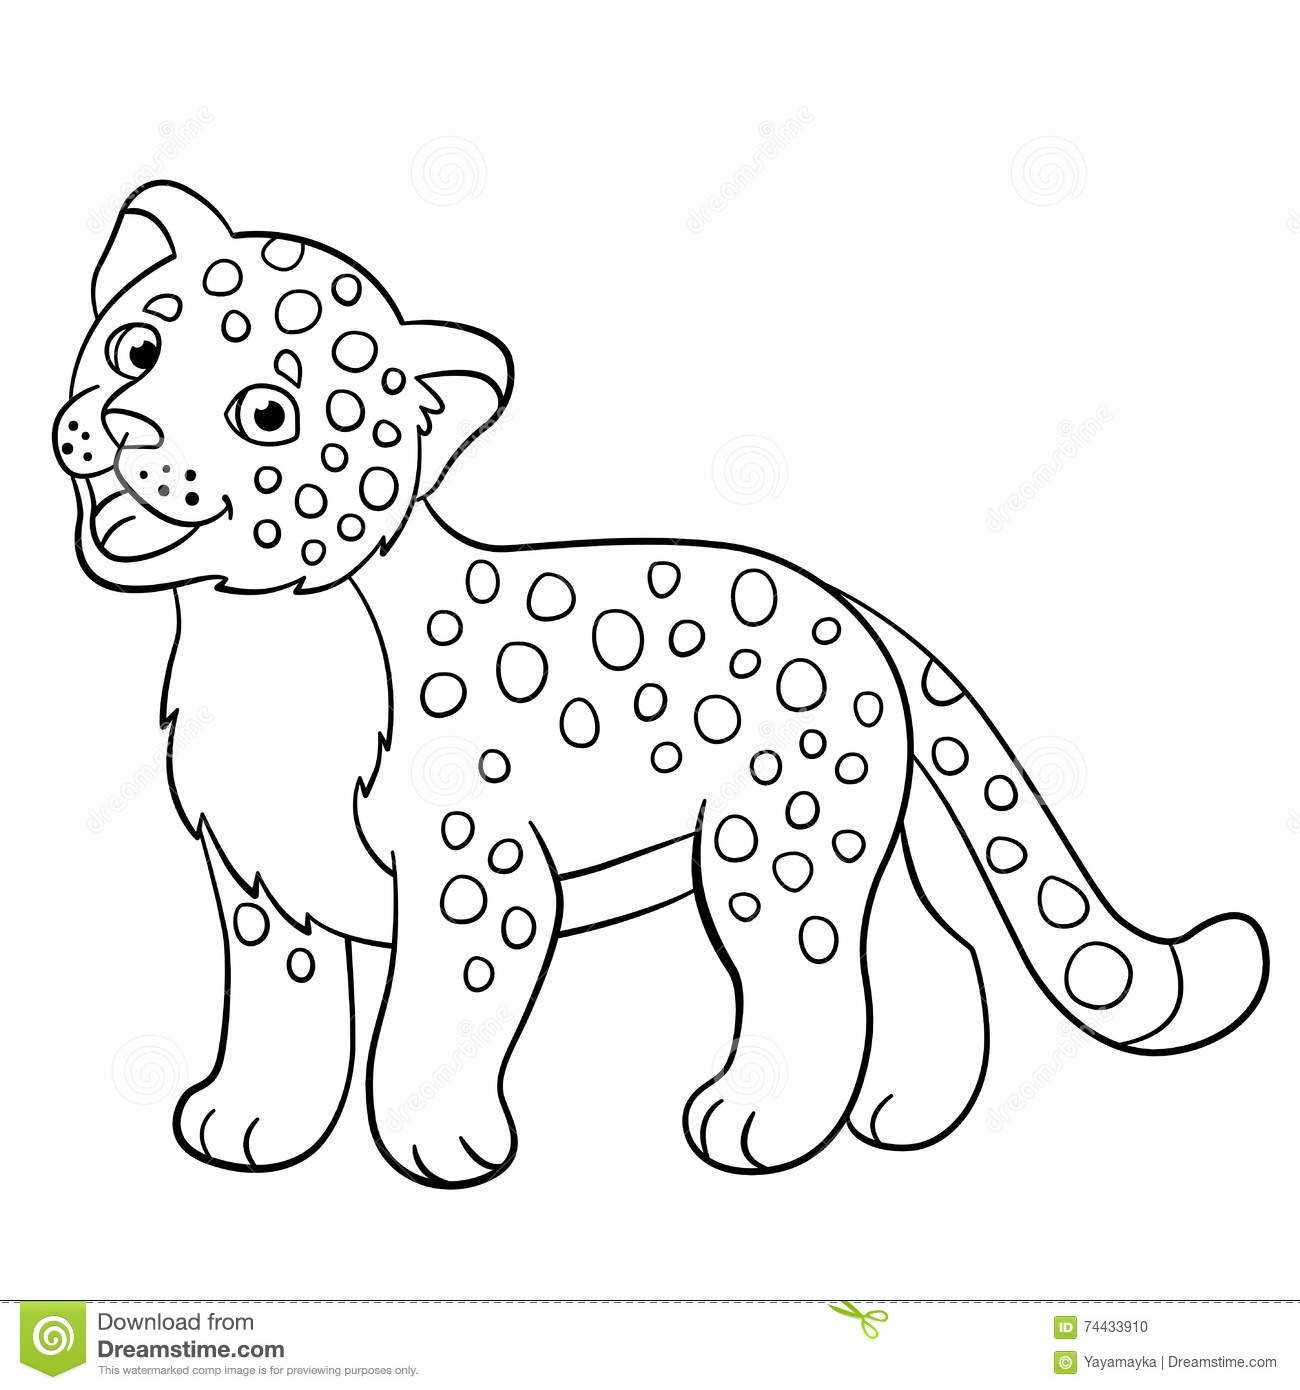 Coloring Pages Little Cute Baby Jaguar Smiles Stock Vector Illustration Of Cartoon Coloring 74433910